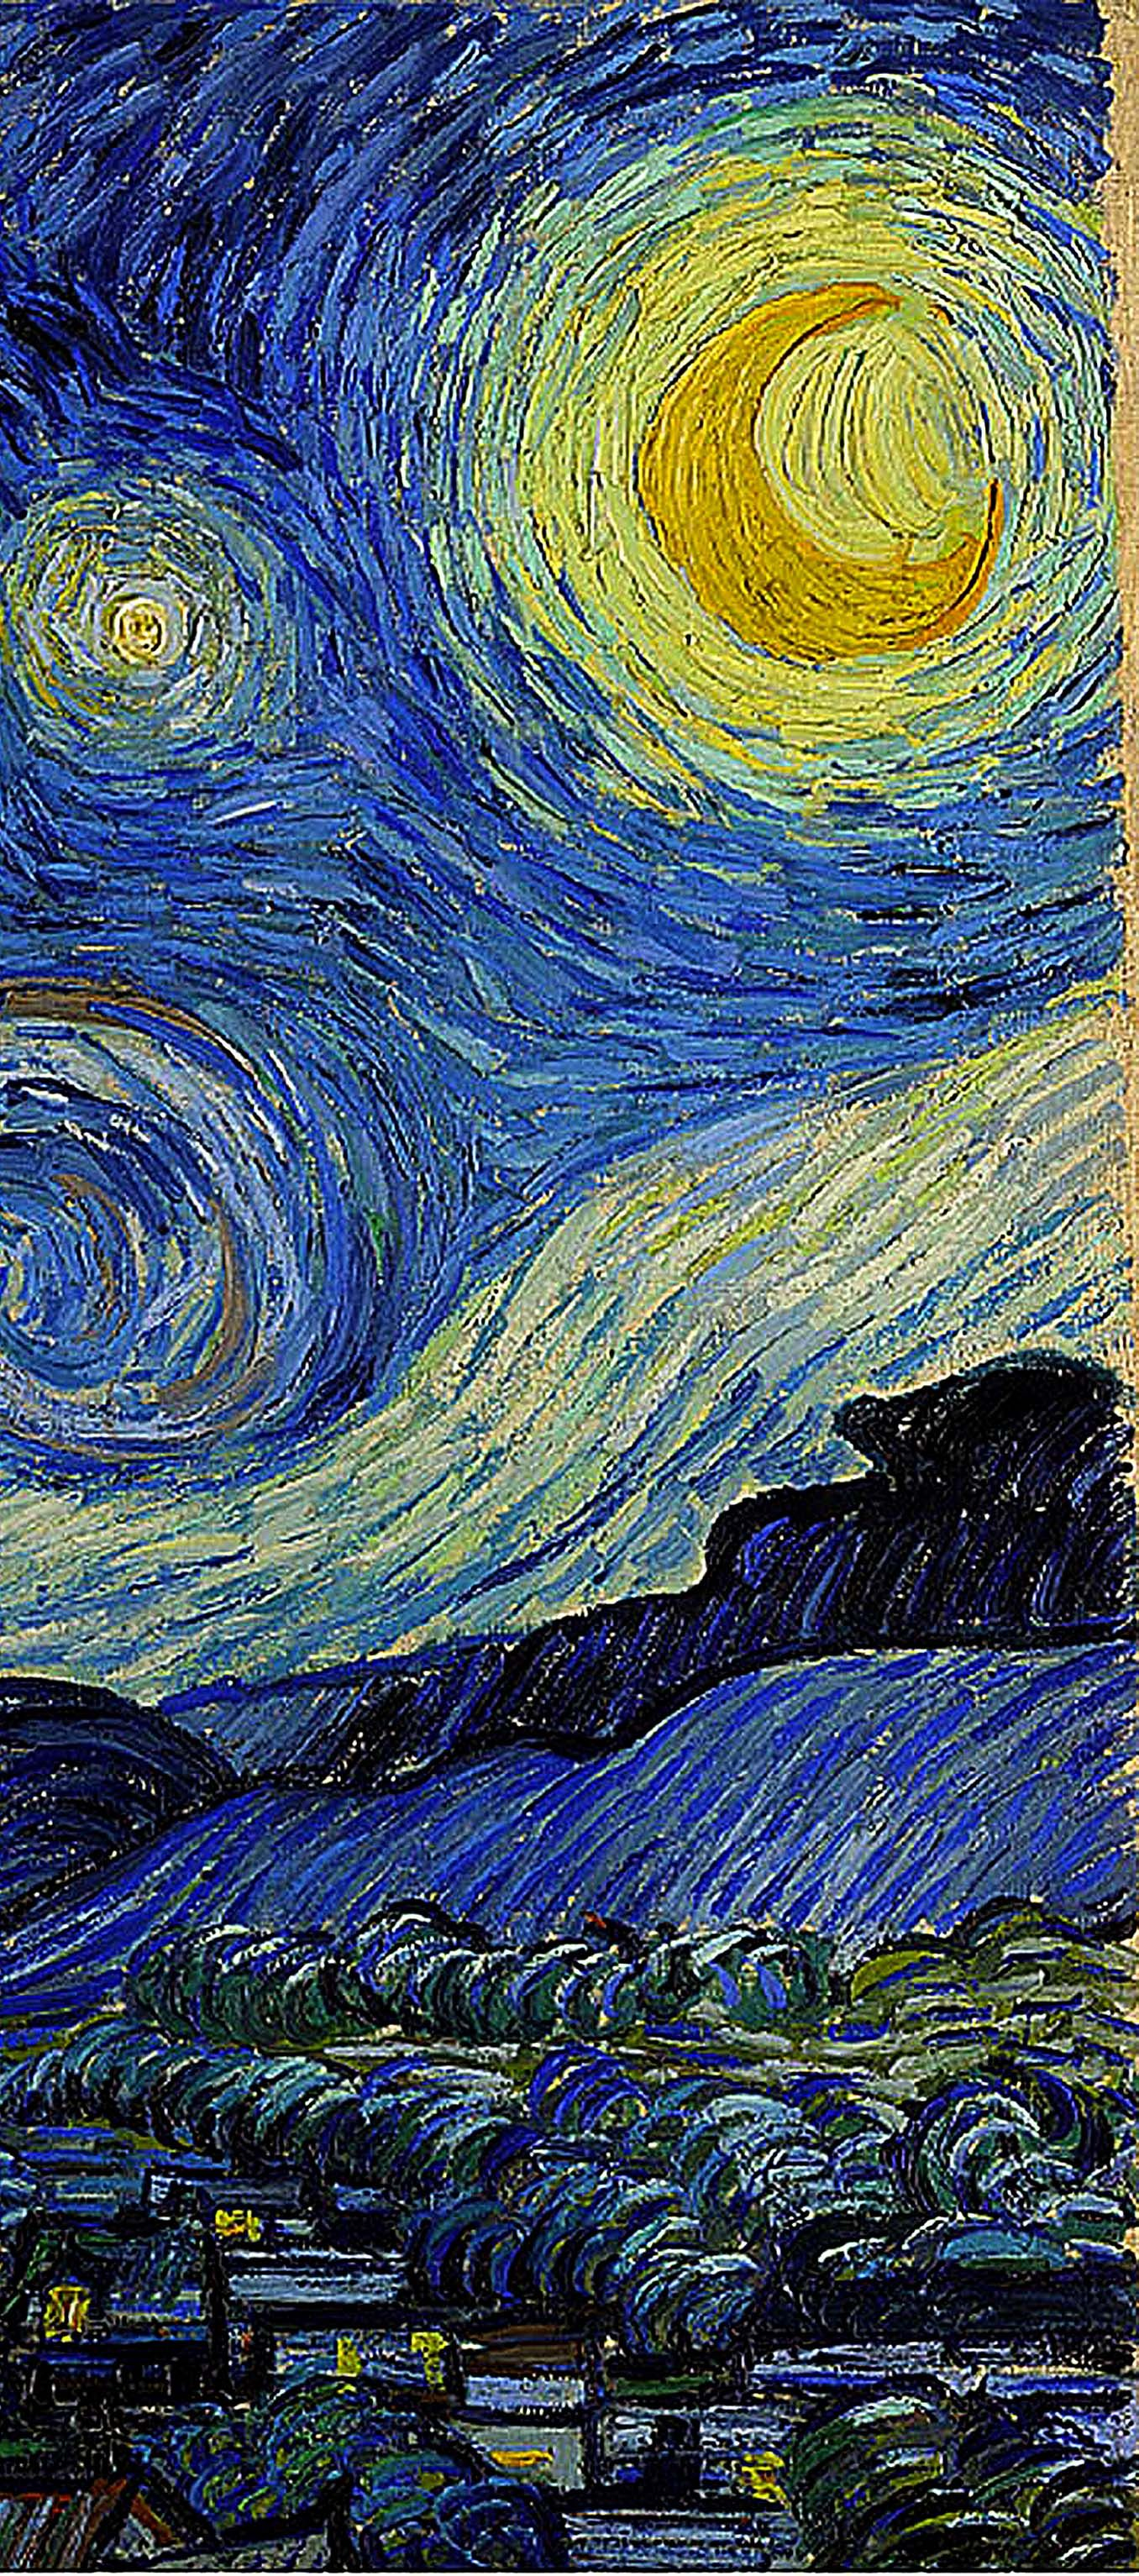 'Starry Night' detail 1889 Vincent van Gogh Van Gogh Wallpaper, Monet Wallpaper,